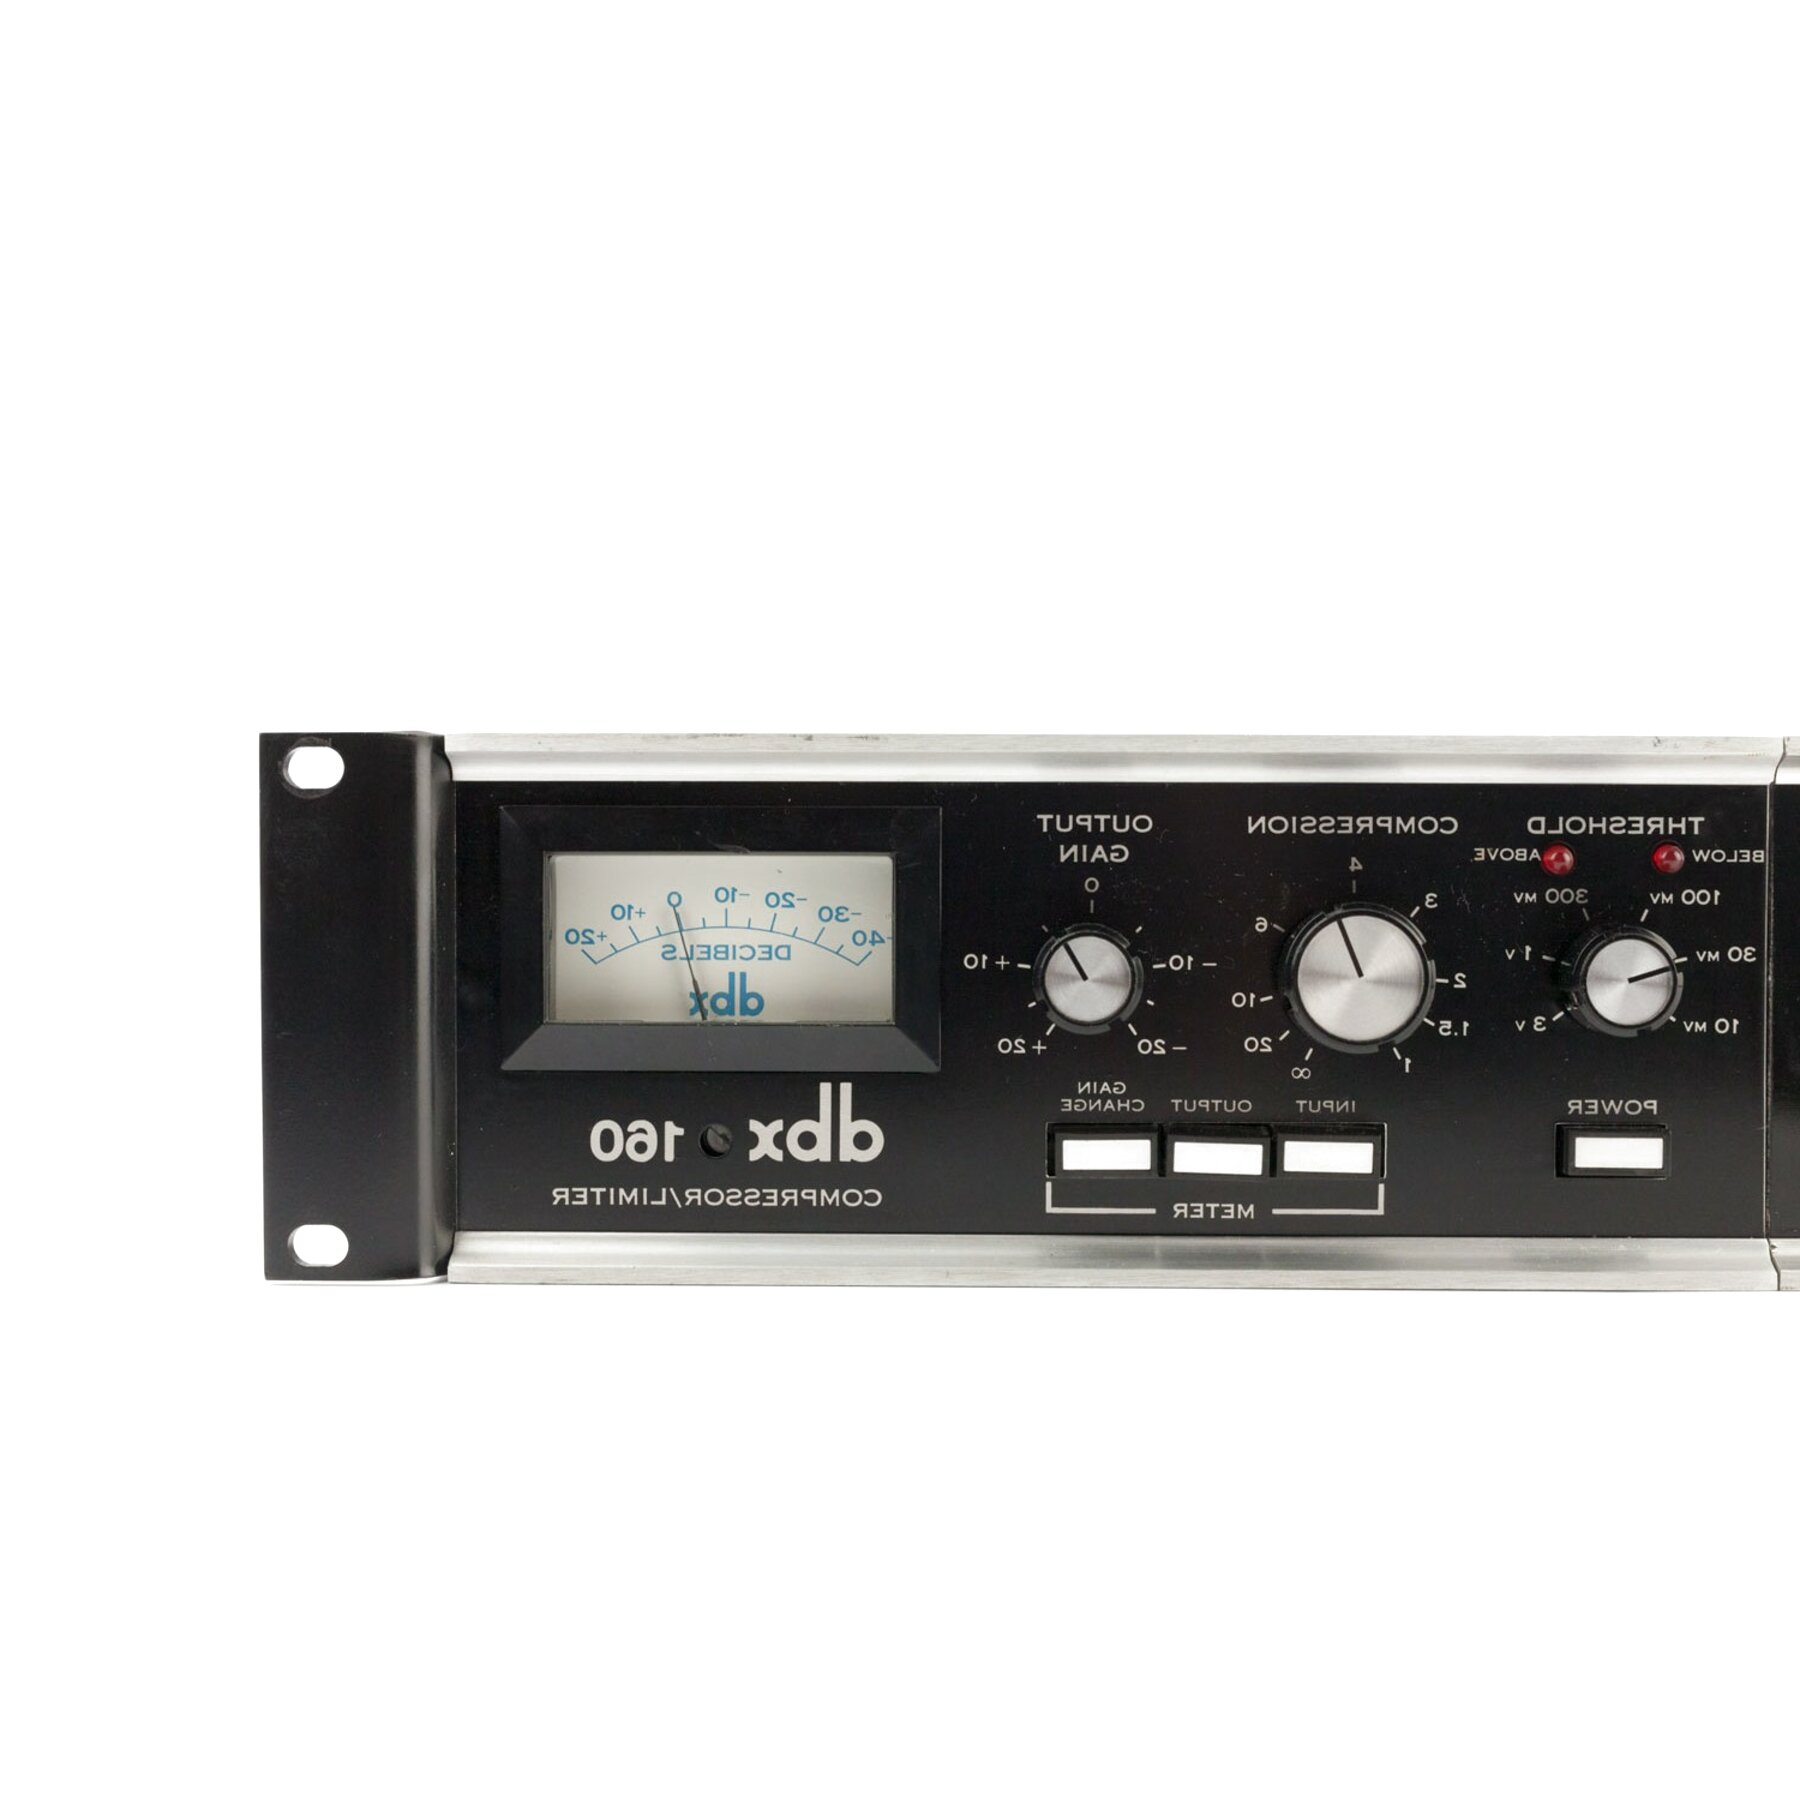 dbx 160 for sale